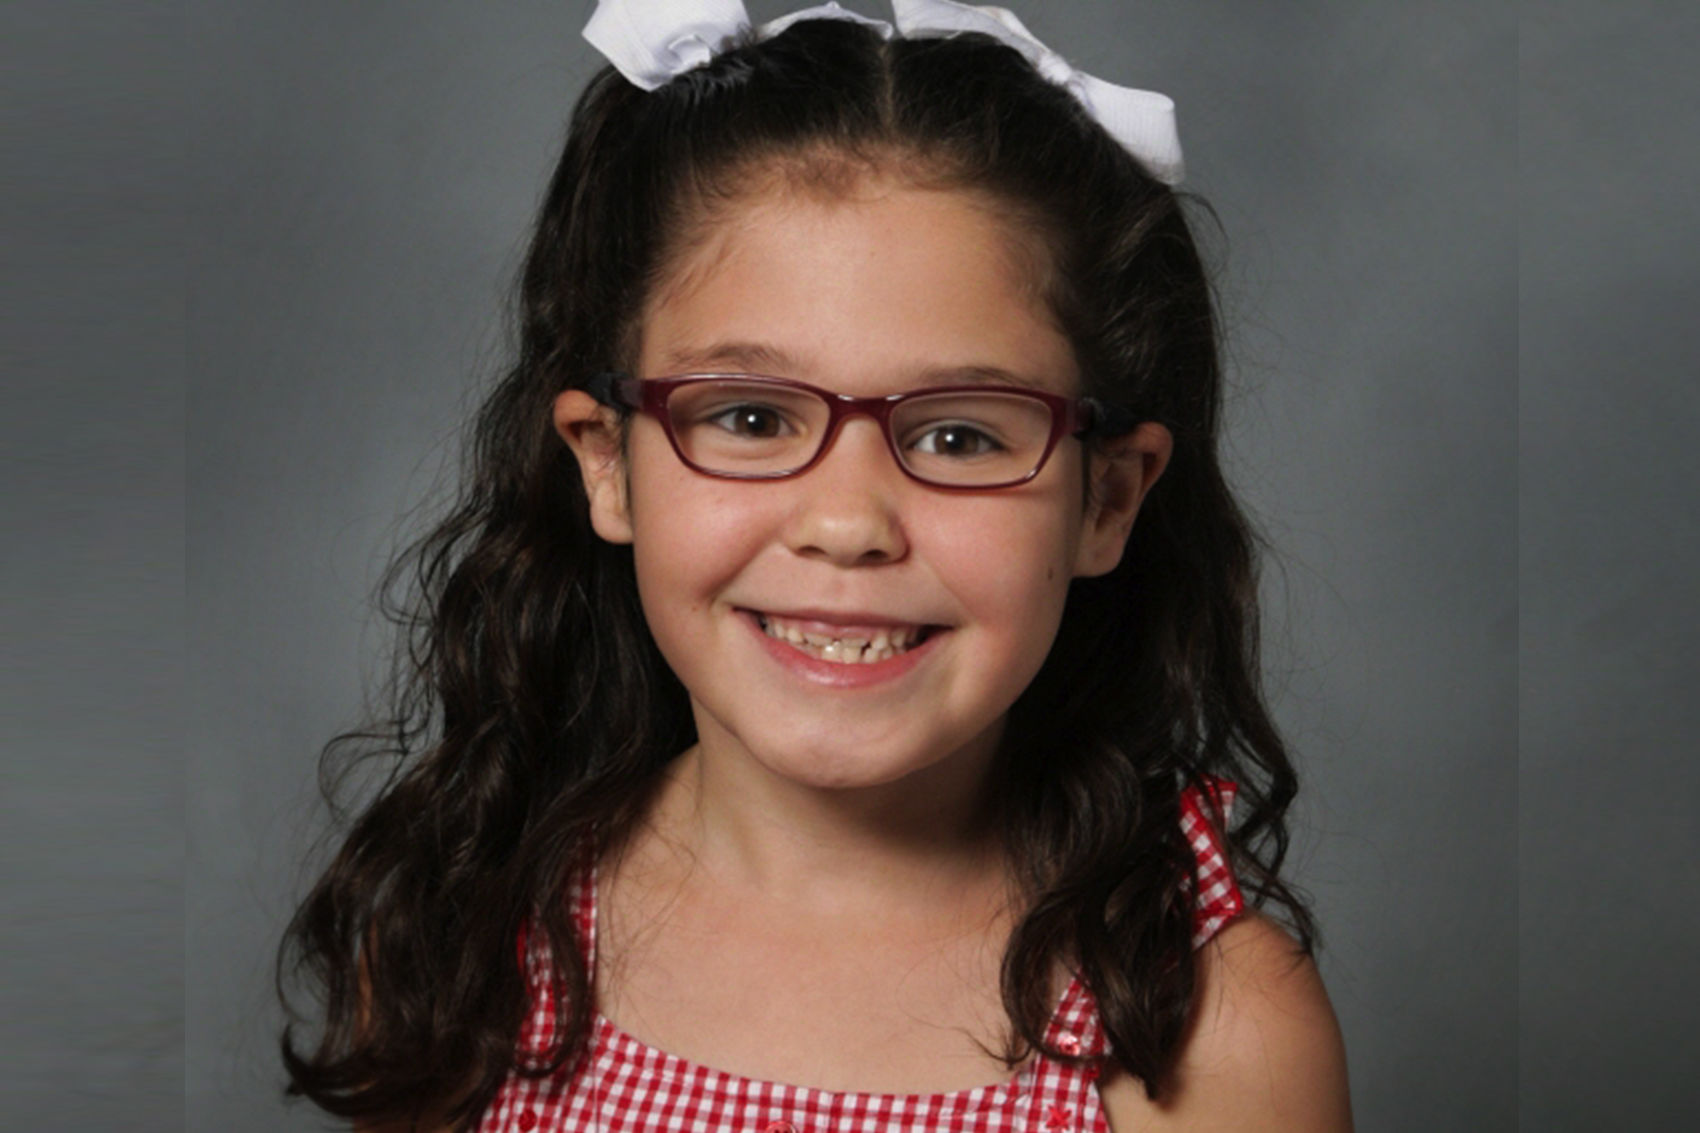 Mesa girl wins handwriting contest | East Valley Tribune